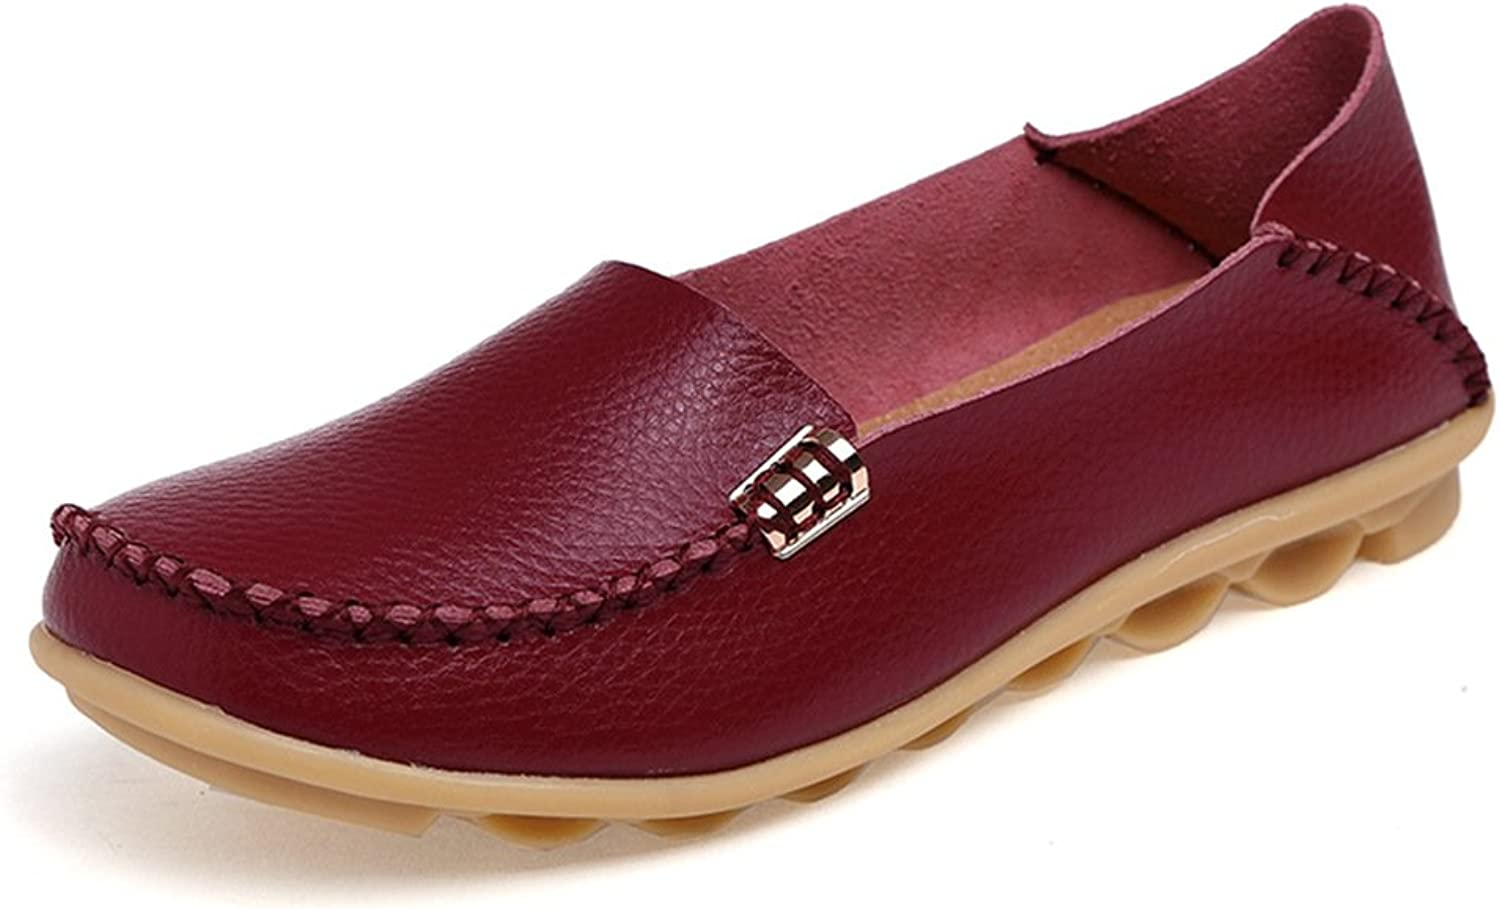 Temofon Women's Leather Loafers Flats Driving Moccasins Casual Indoor shoes Slip-On Slippers